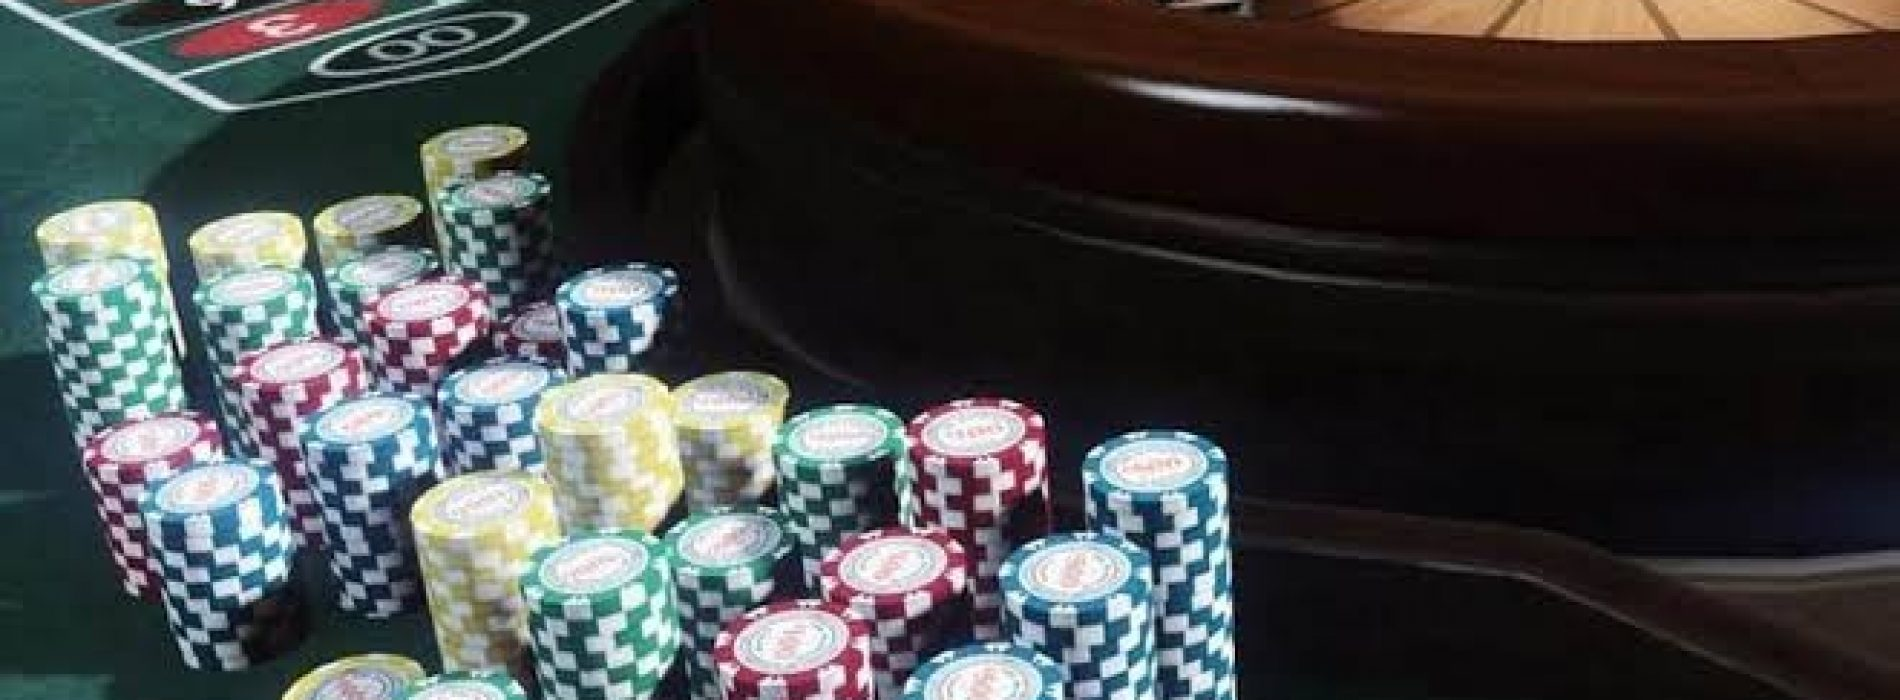 Online Gambling – 5 Useful Tips to Make More Money!